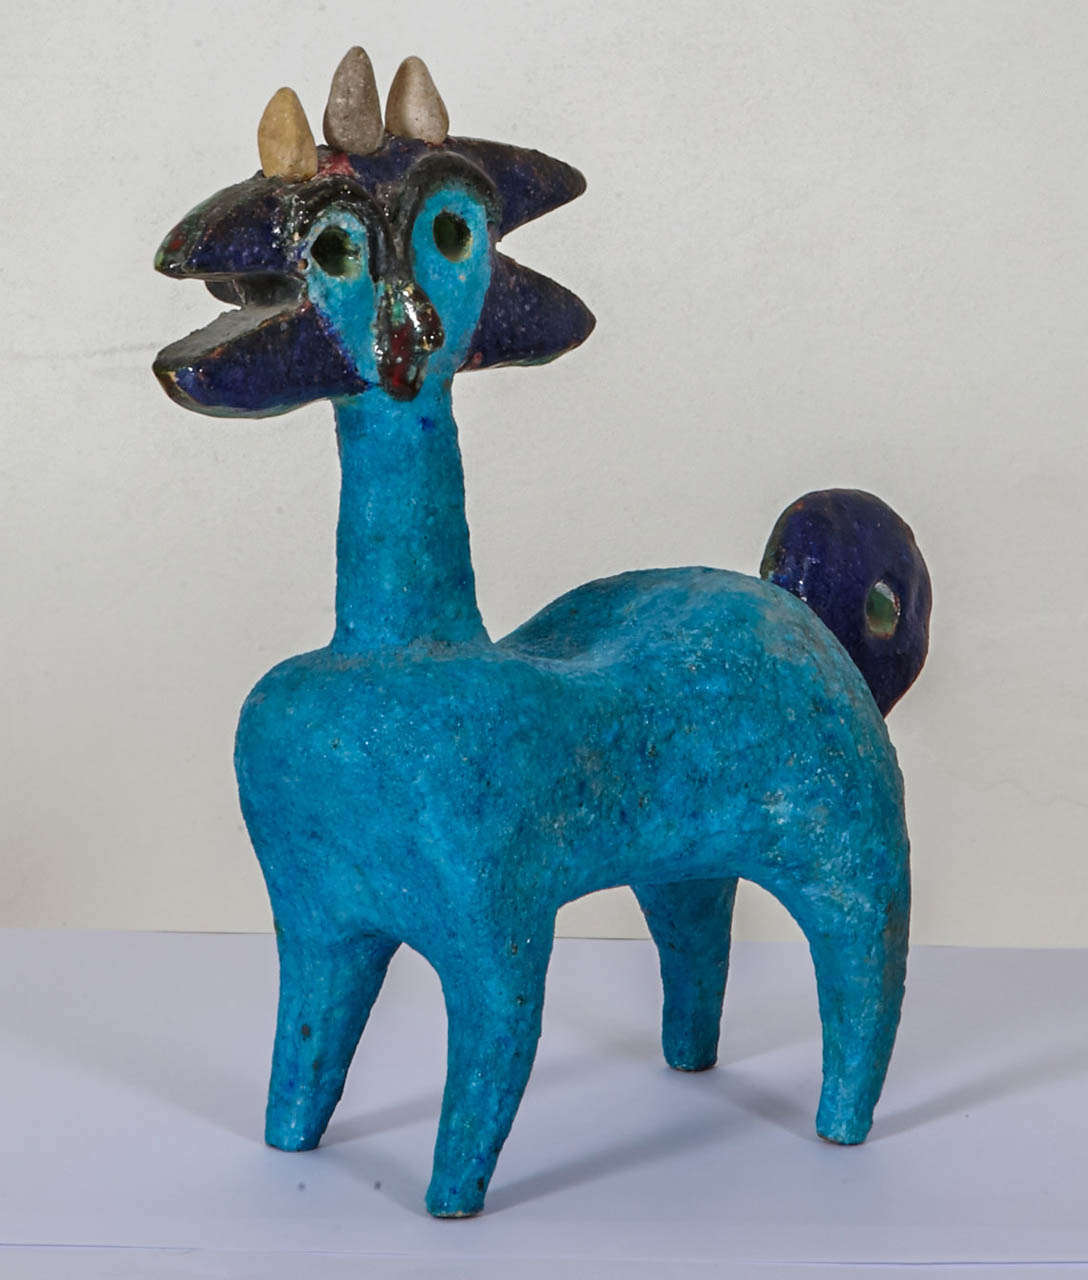 """Double faced blue enameled earthenware """"Fabulous zoomorphic idol, circa 1960-1965, by Guidette Carbonell (1910-2008) With green, red, black colors too. Stone horns. Unique piece, monogrammed. Re´f : F.Bodet, K.Lacquemant, Guidette Carbonell,"""